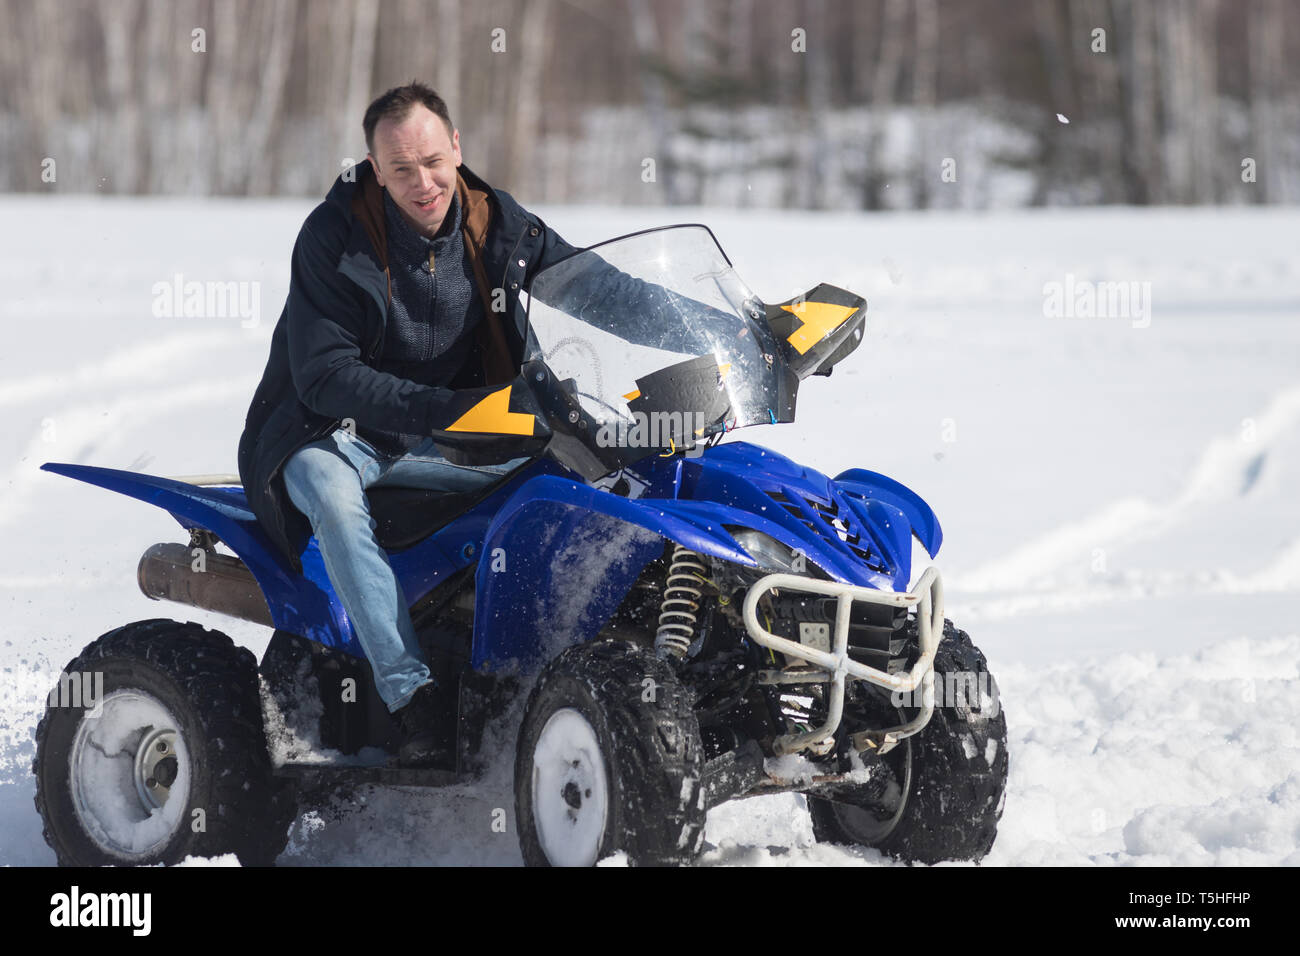 A winter forest. Cold weather. A man riding a big snowmobile Stock Photo